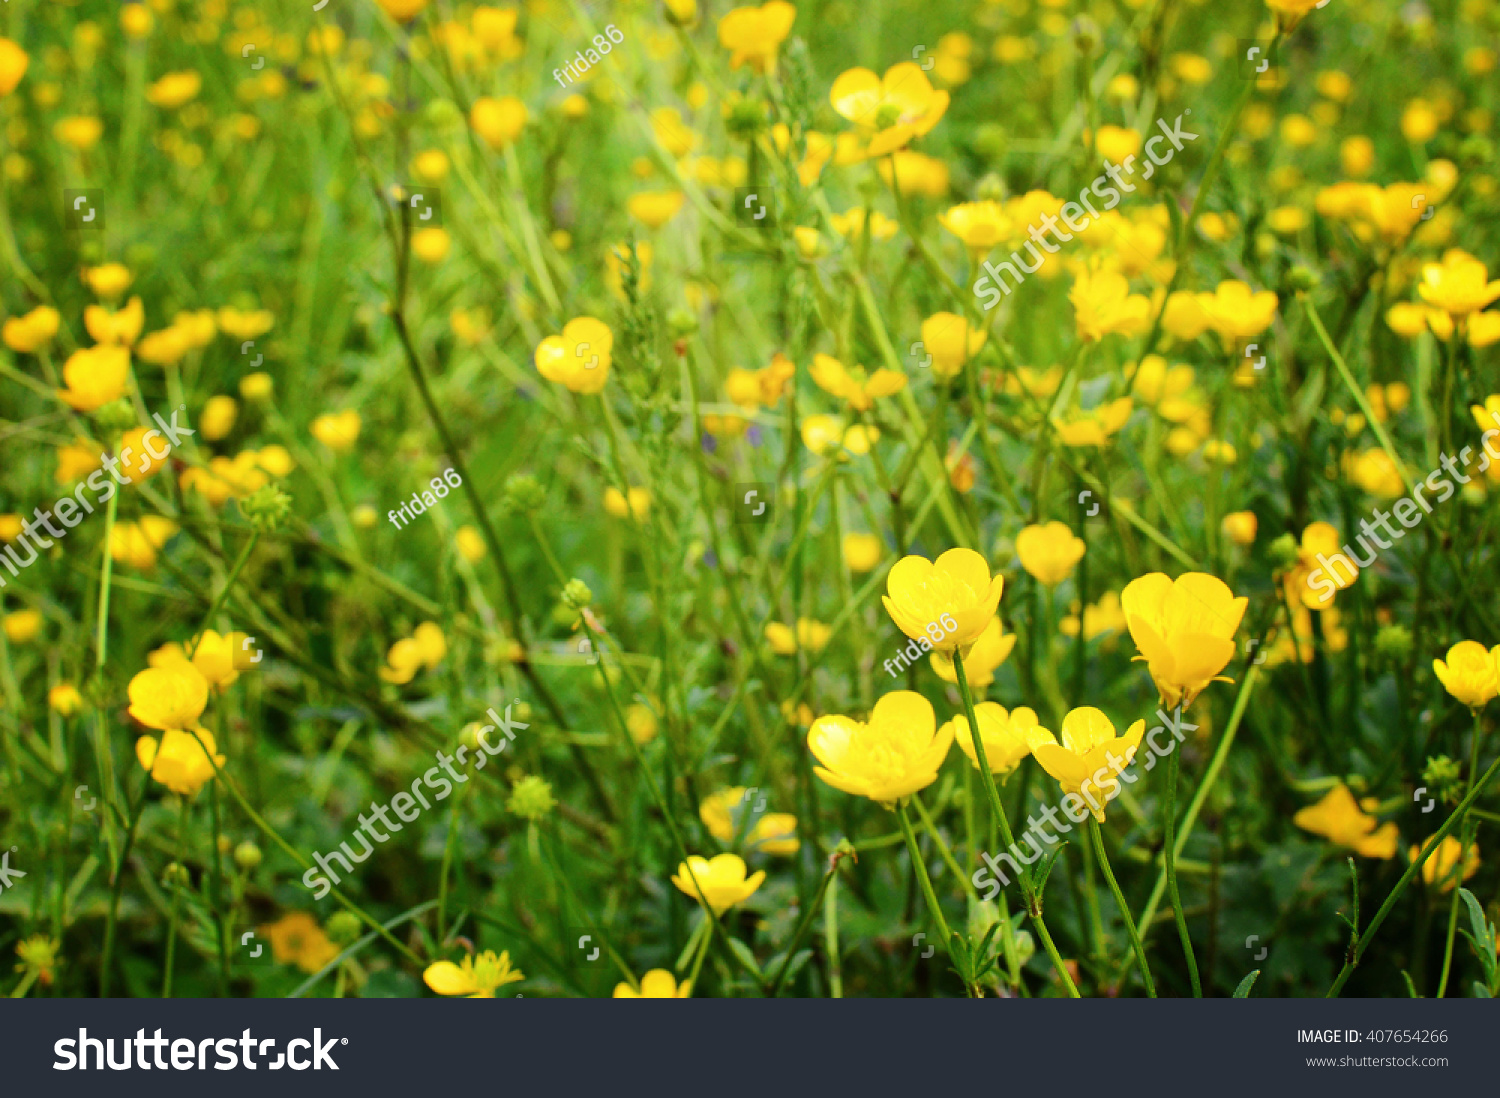 Green Grass With Yellow Flowers Ez Canvas